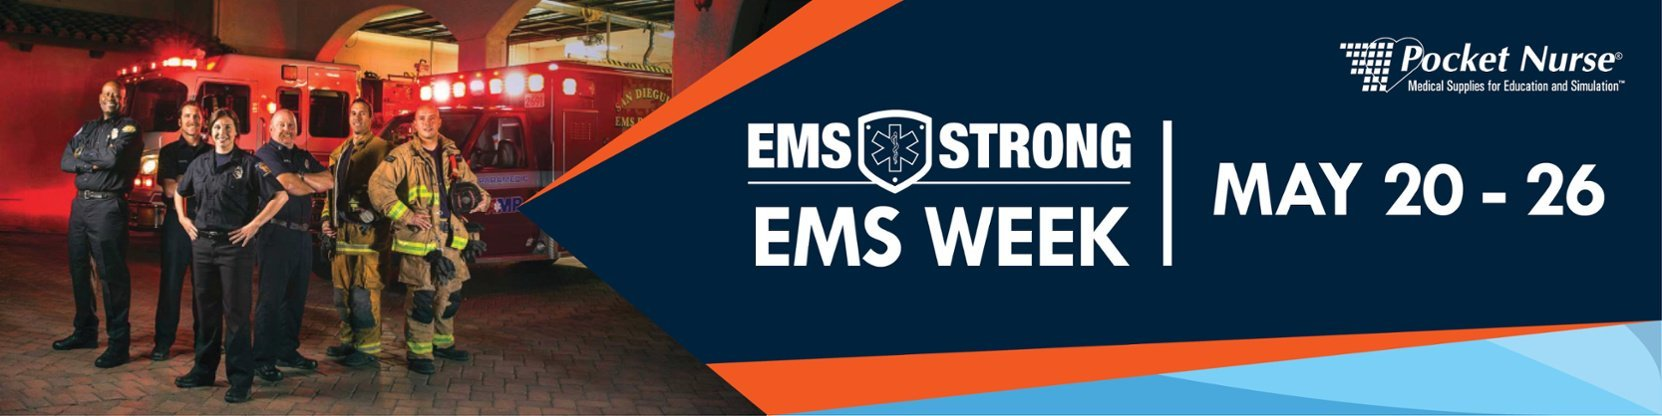 EMS Strong for EMS Week